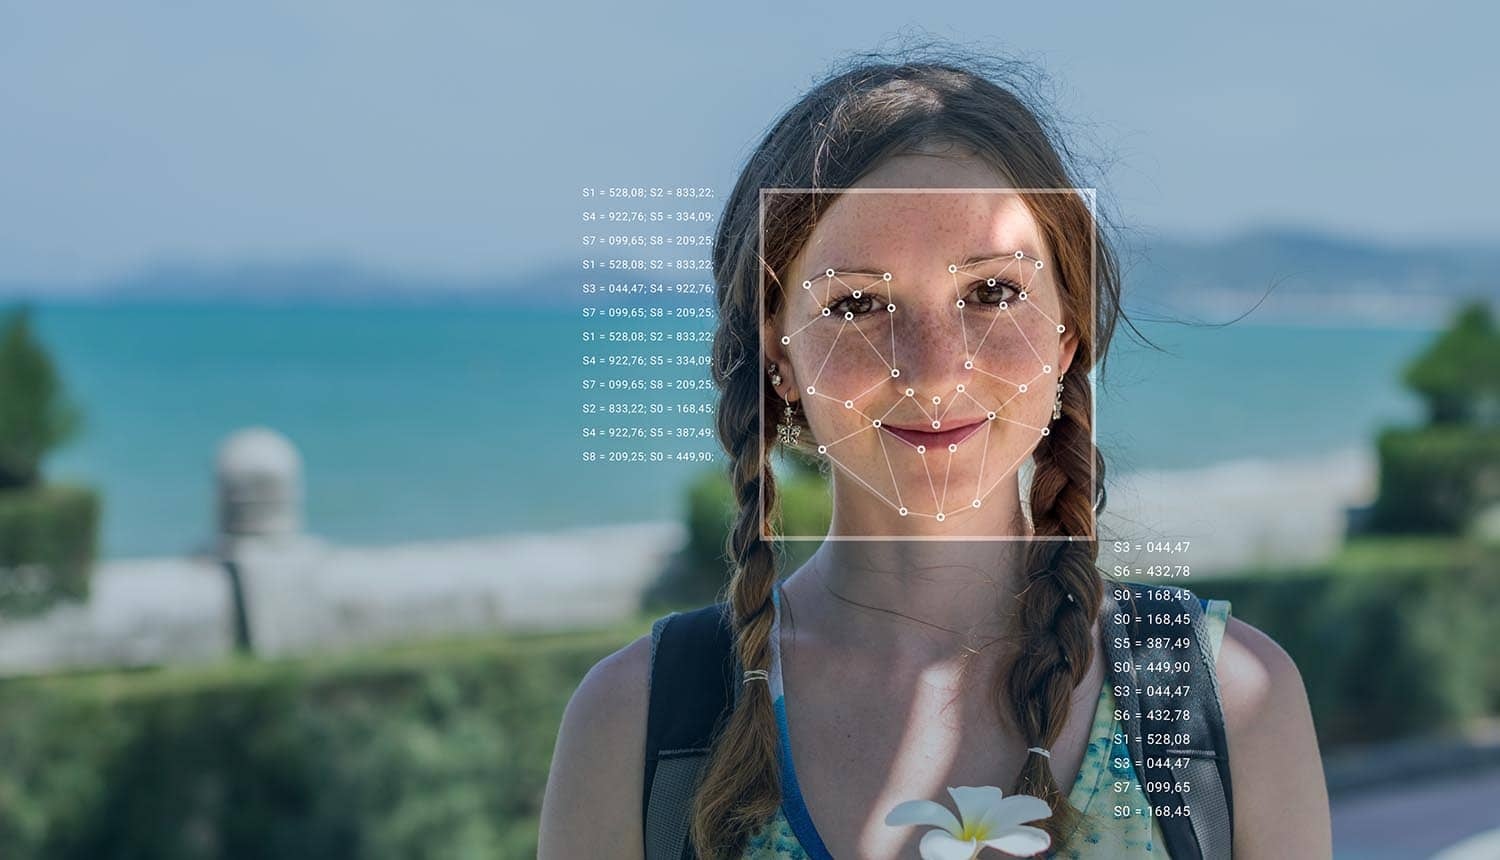 Recognition of a female face by layering a mesh and the calculation of the personal data by the software